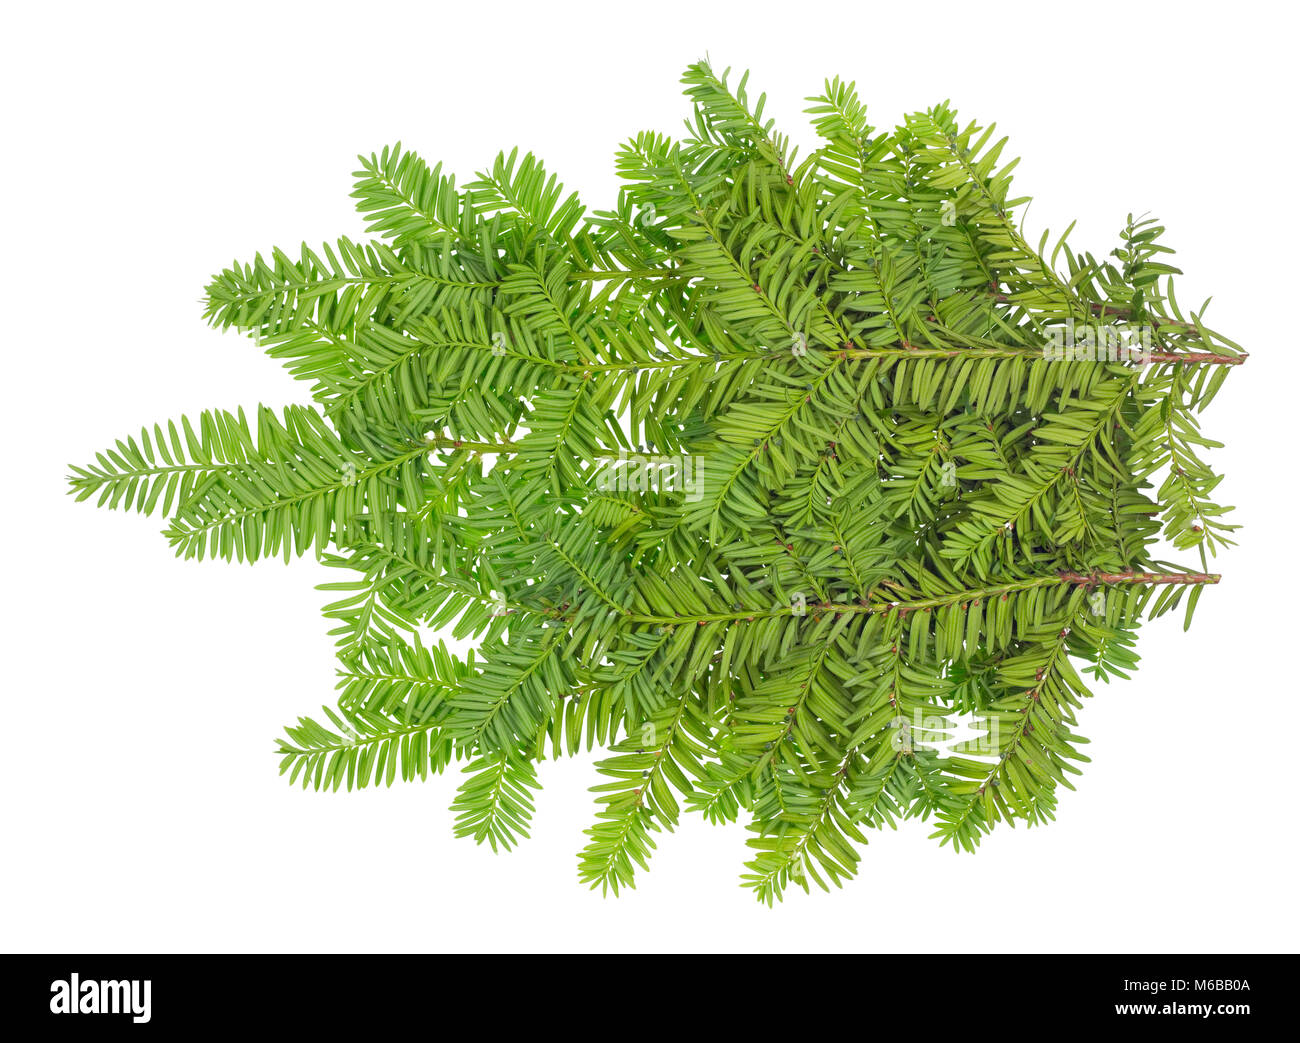 Branche of an evergreen coniferous  Yew  xmas tree. Isolated on white studio shot - Stock Image